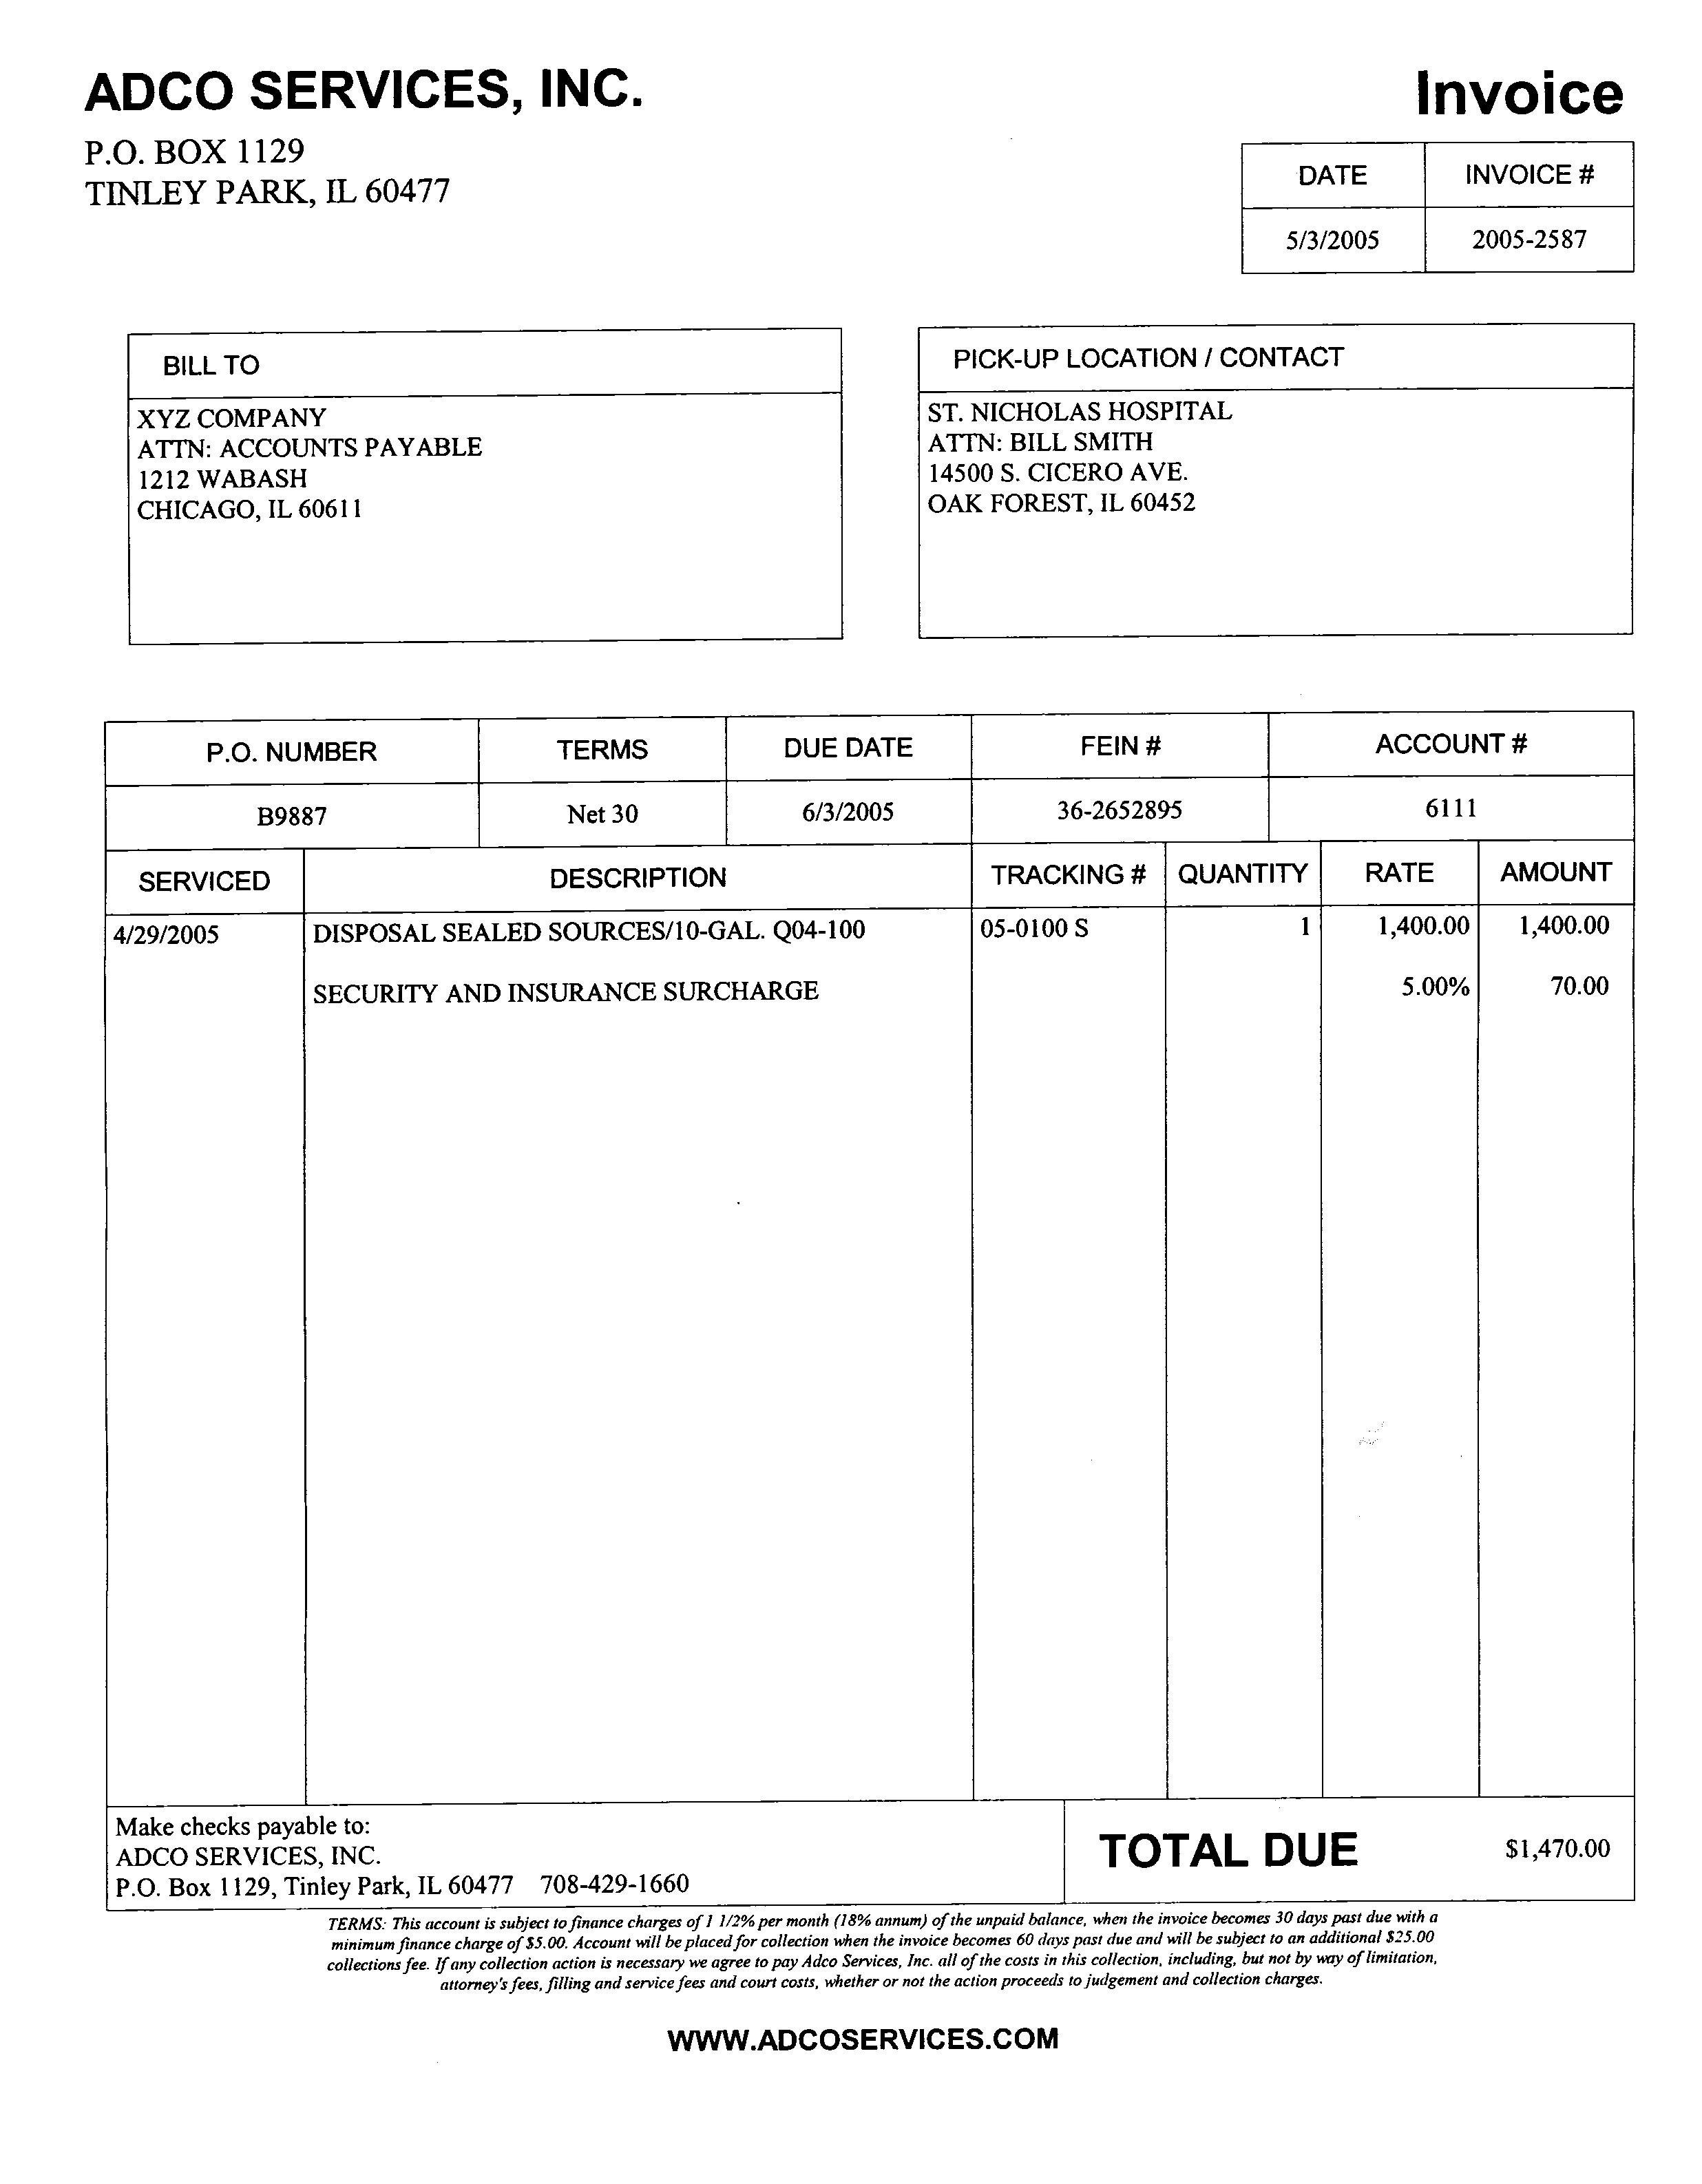 invoice bill invoice bill service invoice template invoice for invoice bill to